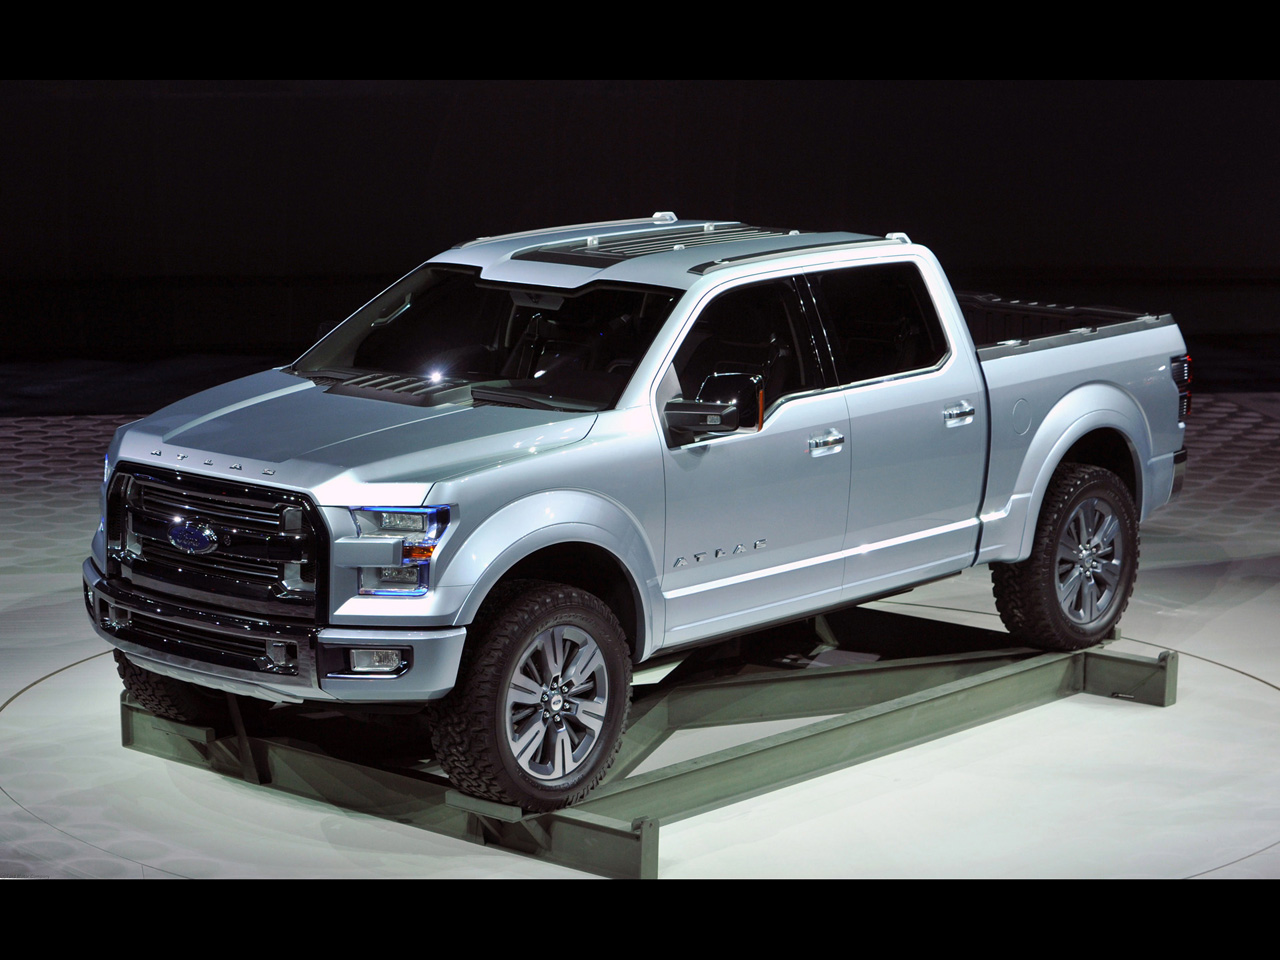 2014 Ford F150 For Sale >> 2013 Ford Atlas Concept Truck – KnuckleDragger Magazine